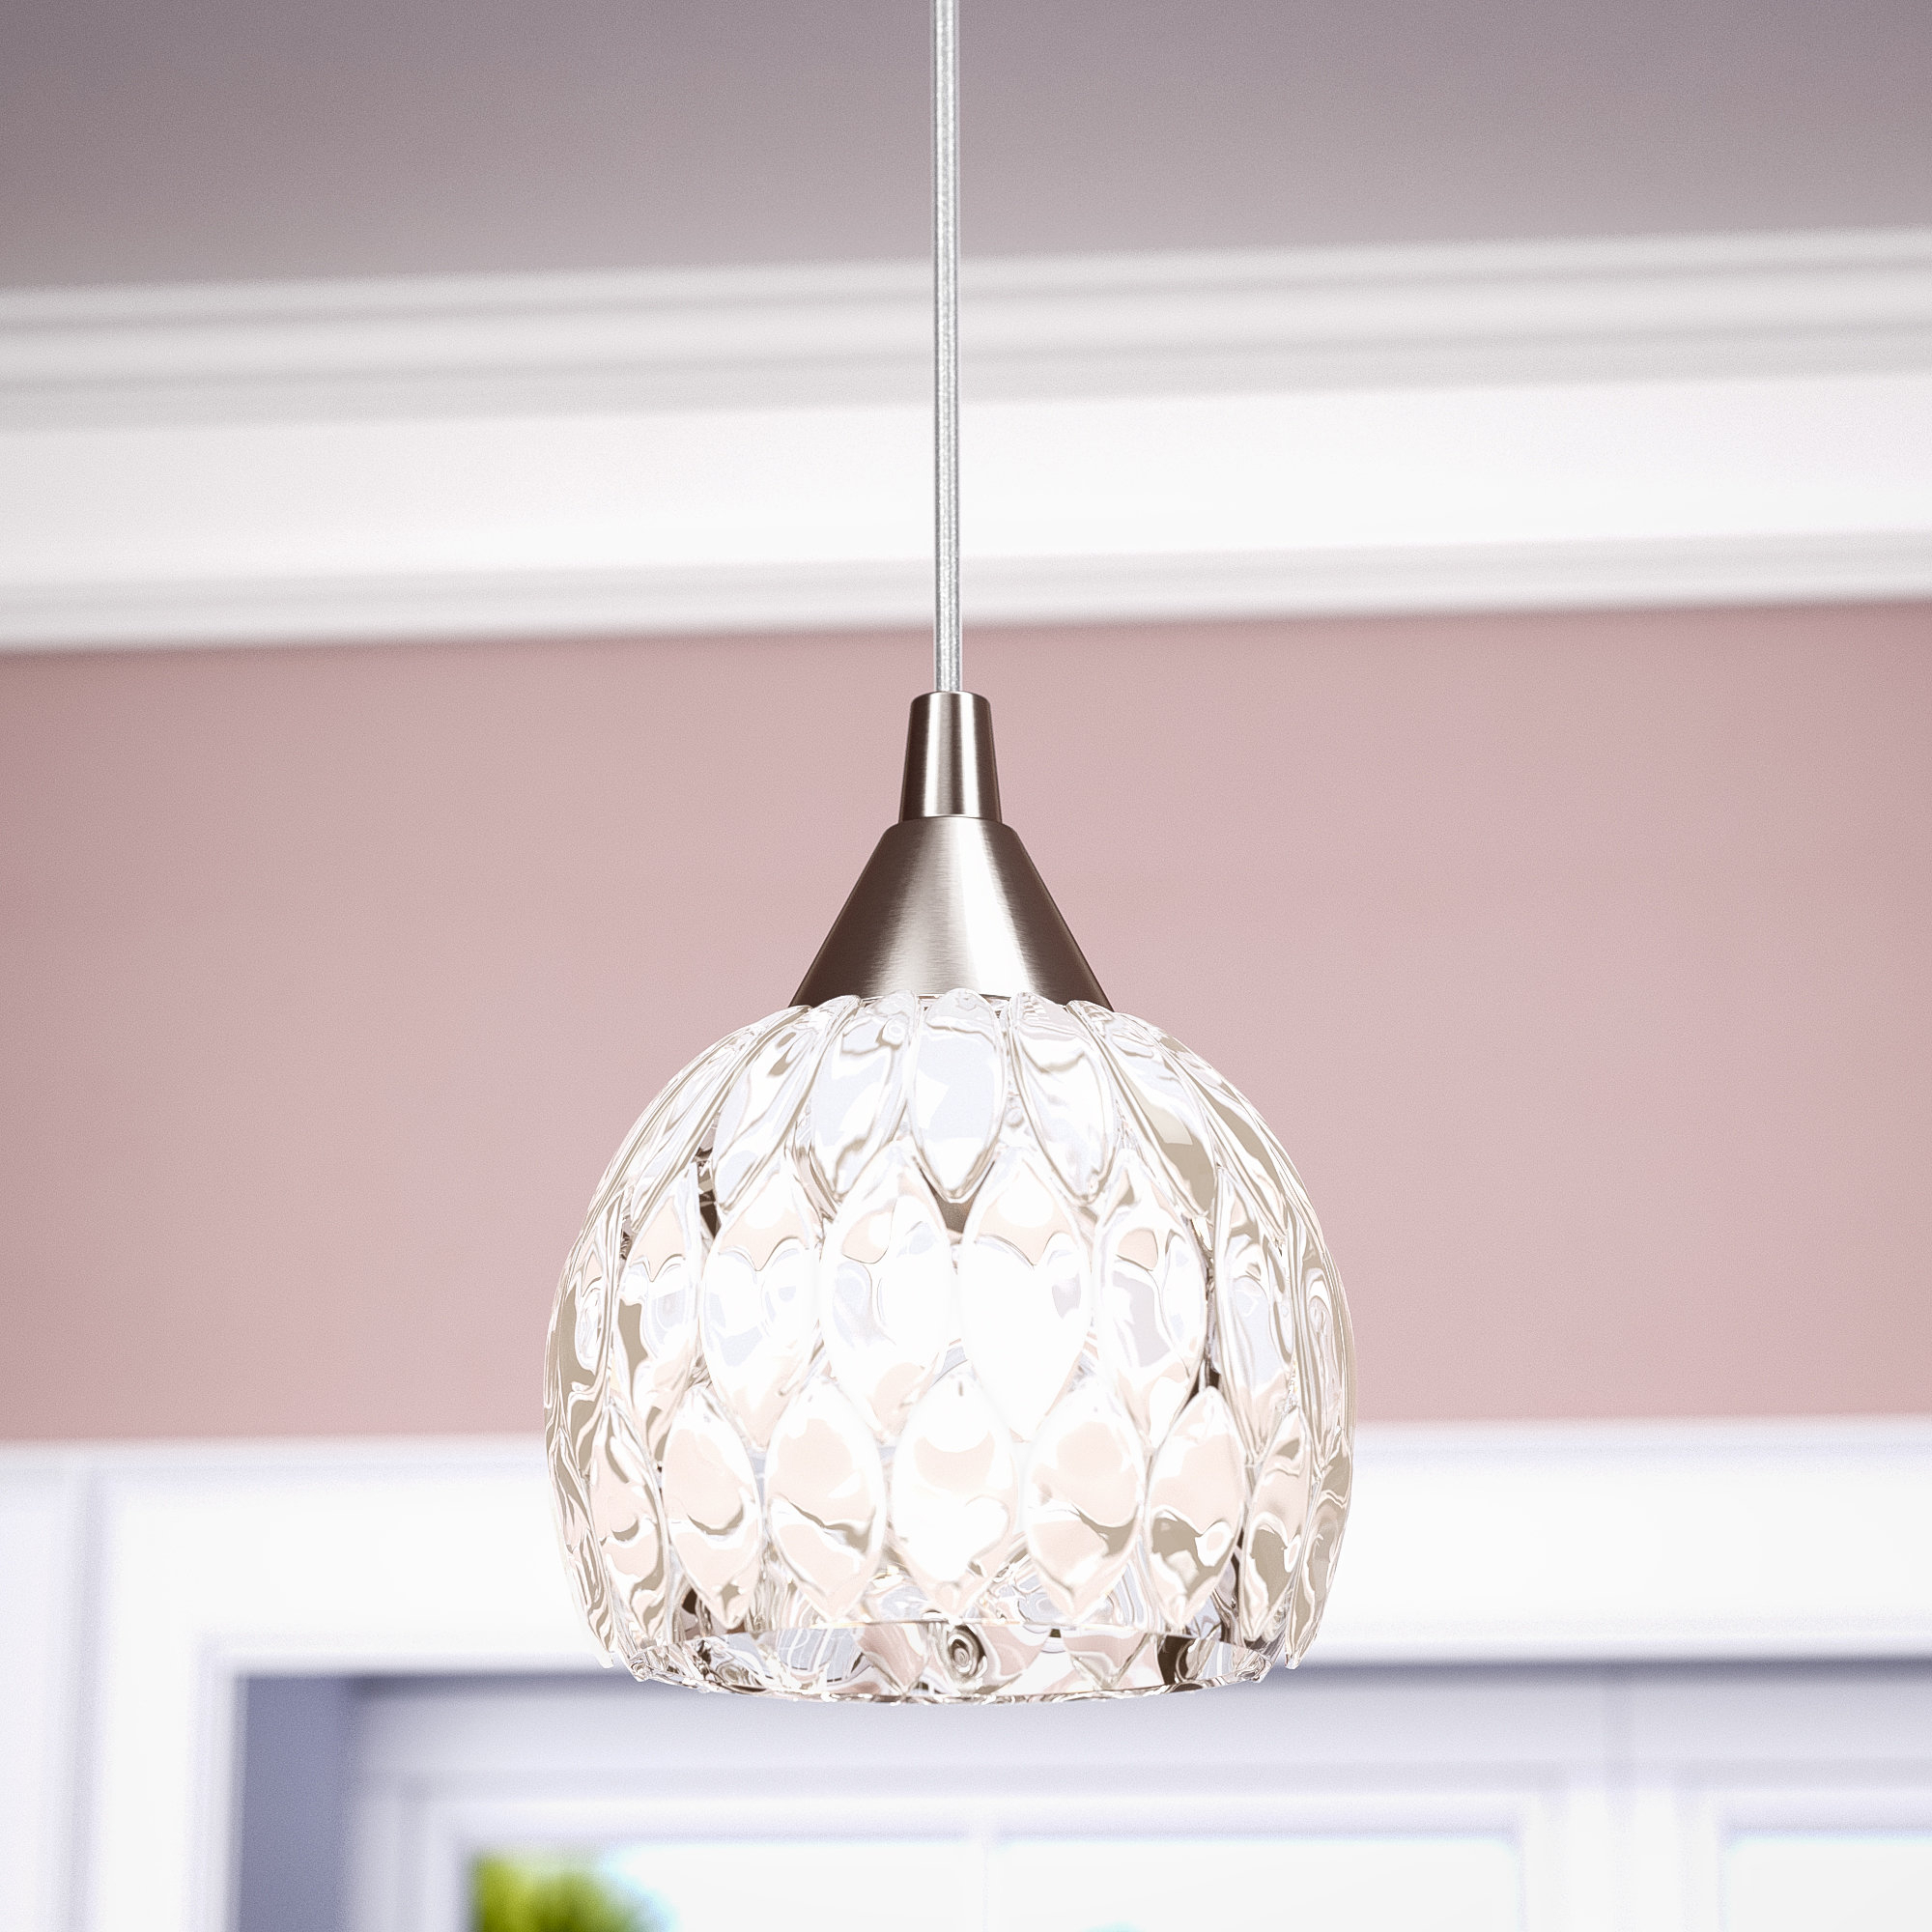 Hermione 1 Light Single Drum Pendants Intended For Most Up To Date Appleton 1 Light Globe Pendant (View 15 of 20)